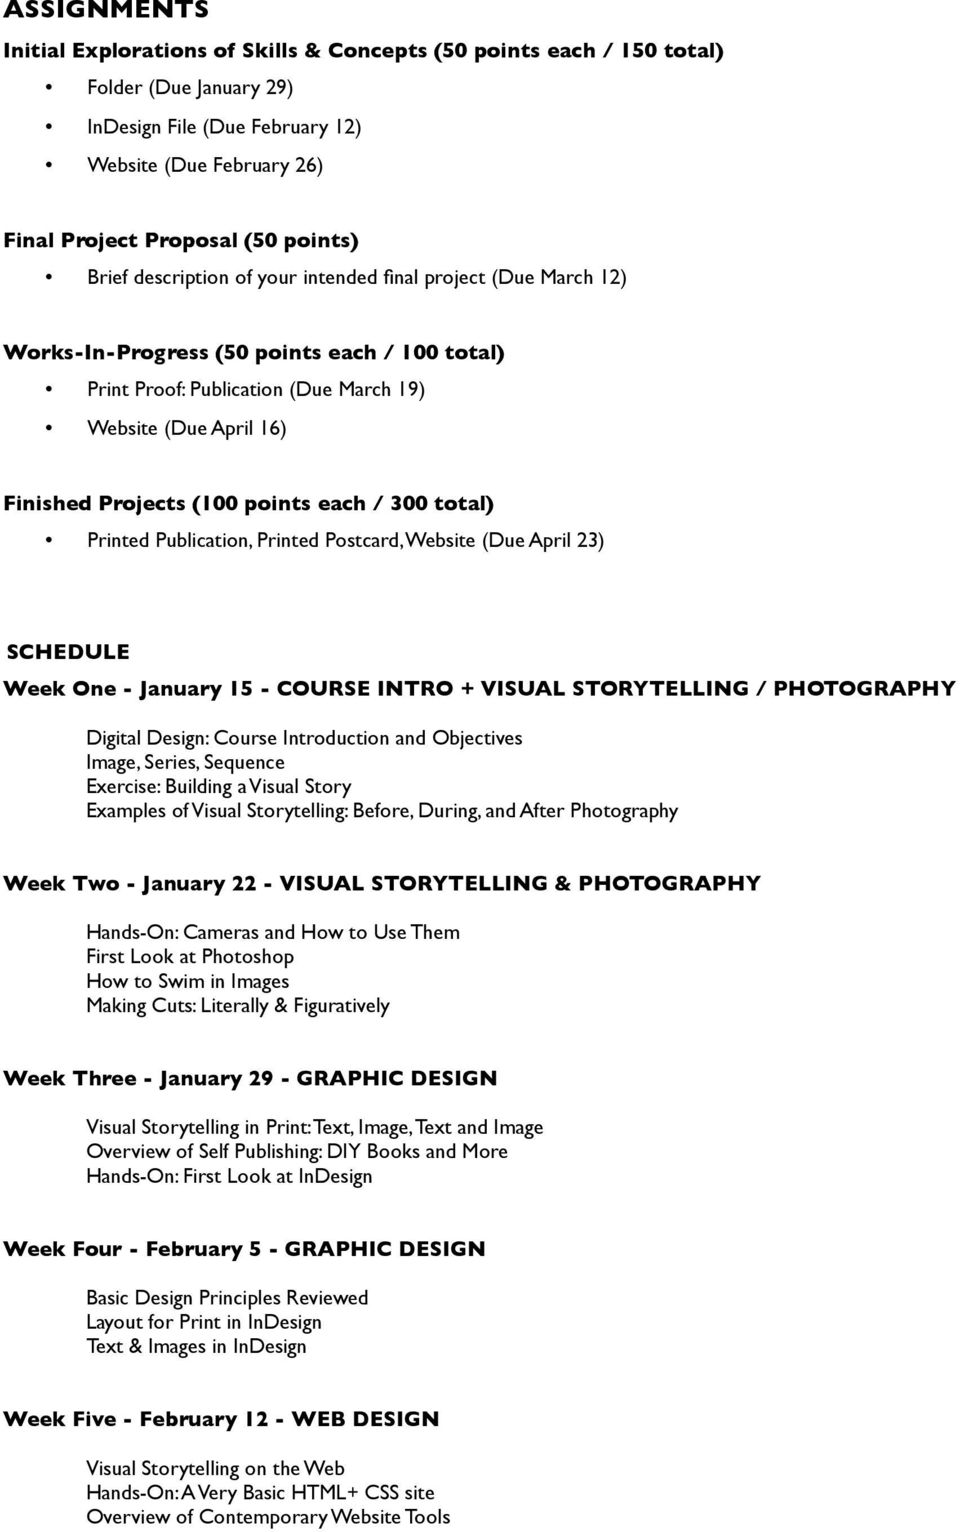 points each / 300 total) Printed Publication, Printed Postcard, Website (Due April 23) SCHEDULE Week One - January 15 - COURSE INTRO + VISUAL STORYTELLING / PHOTOGRAPHY Digital Design: Course